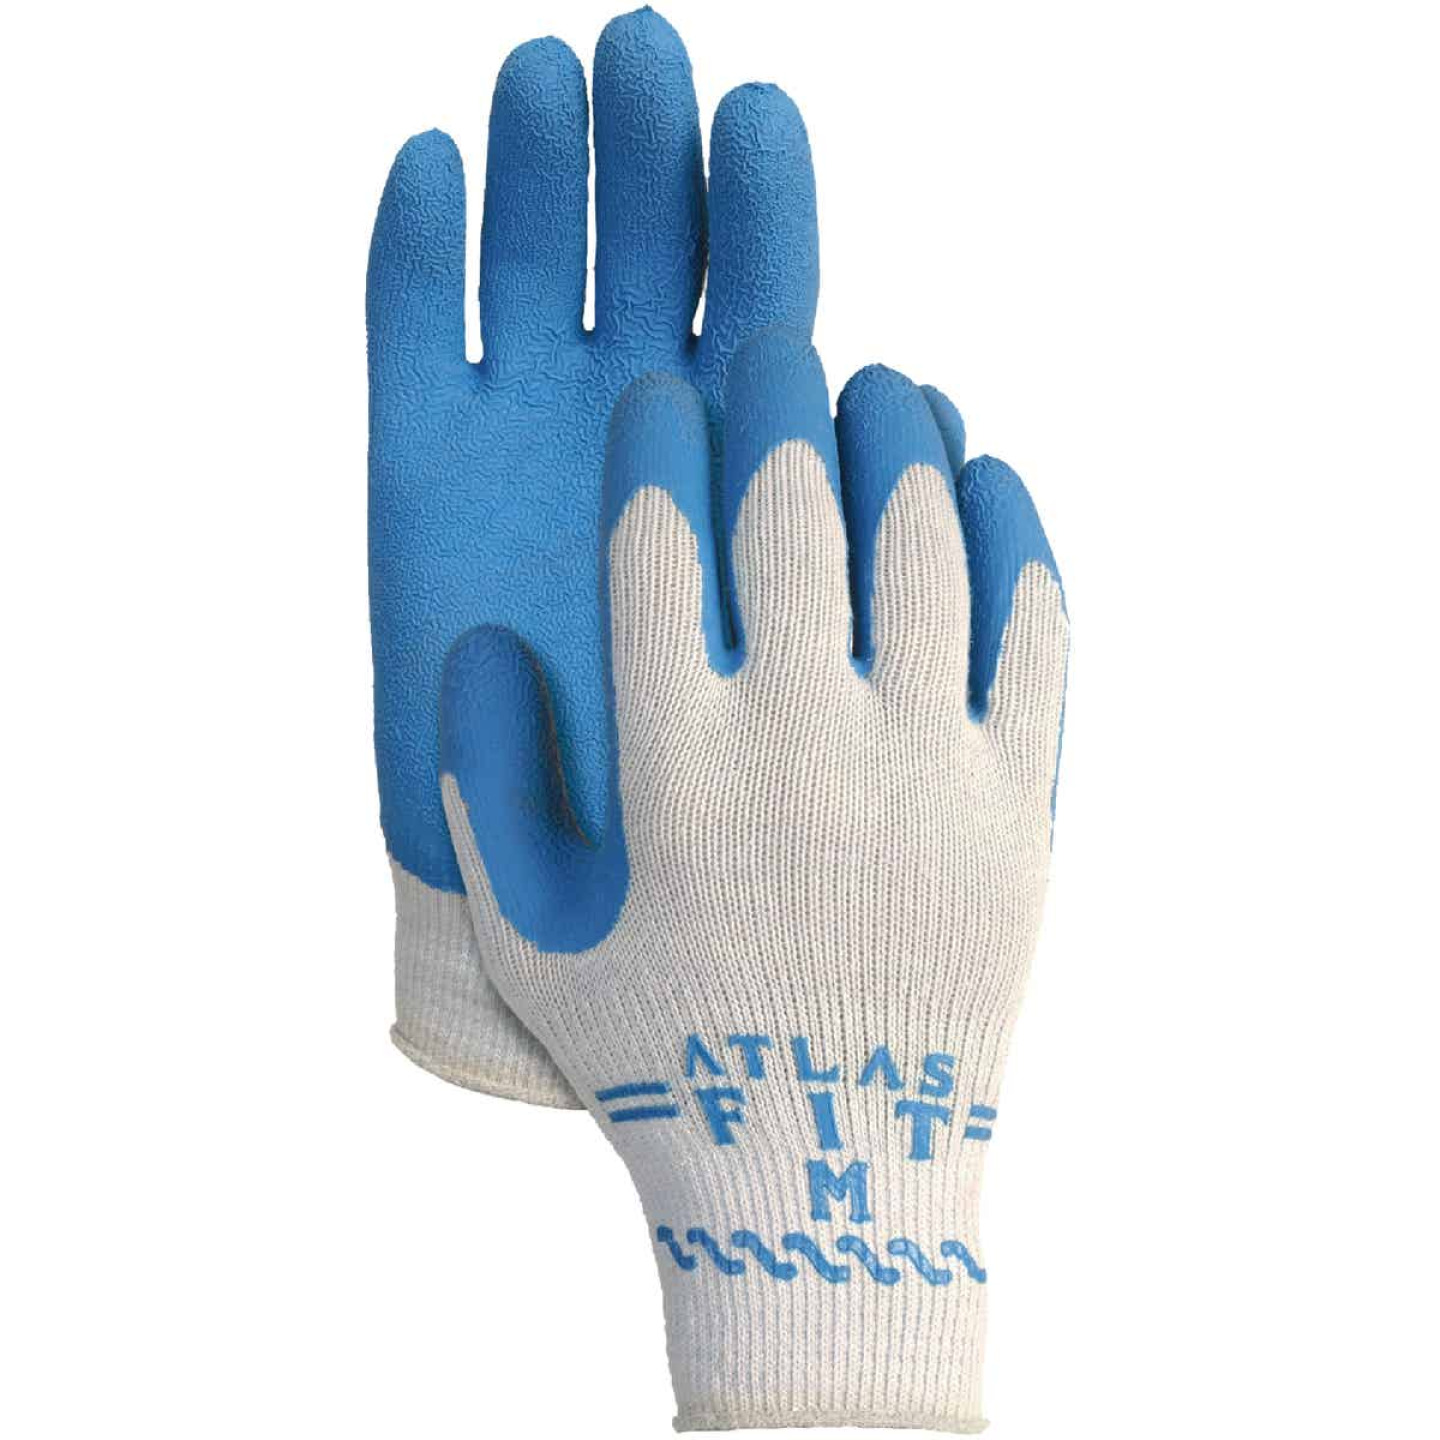 Showa Atlas Men's Large Rubber Coated Glove Image 1